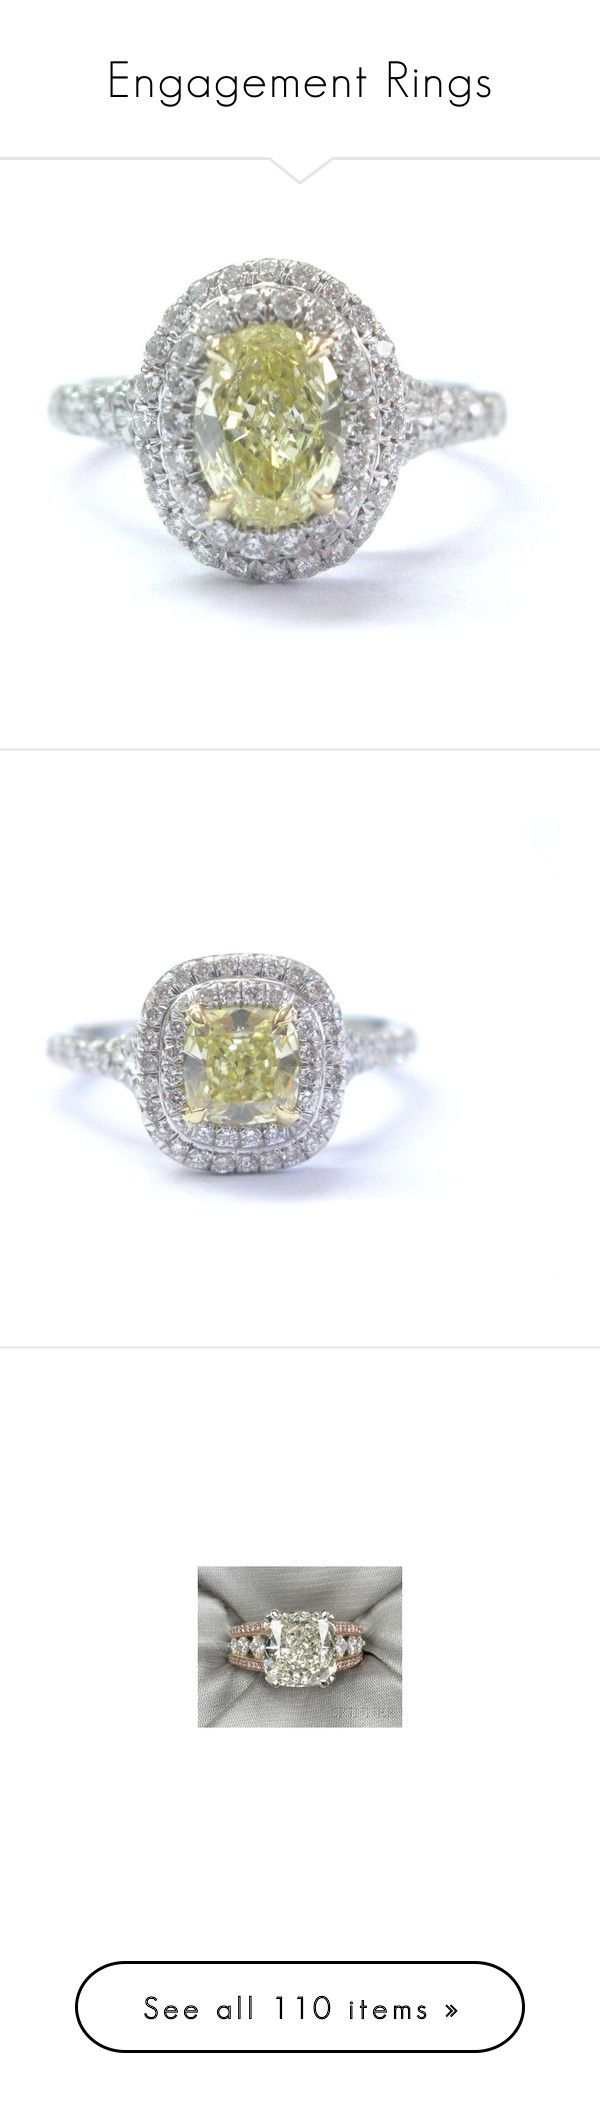 engagement rings by nikki usmc92 liked on polyvore featuring jewelry rings - Preowned Wedding Rings